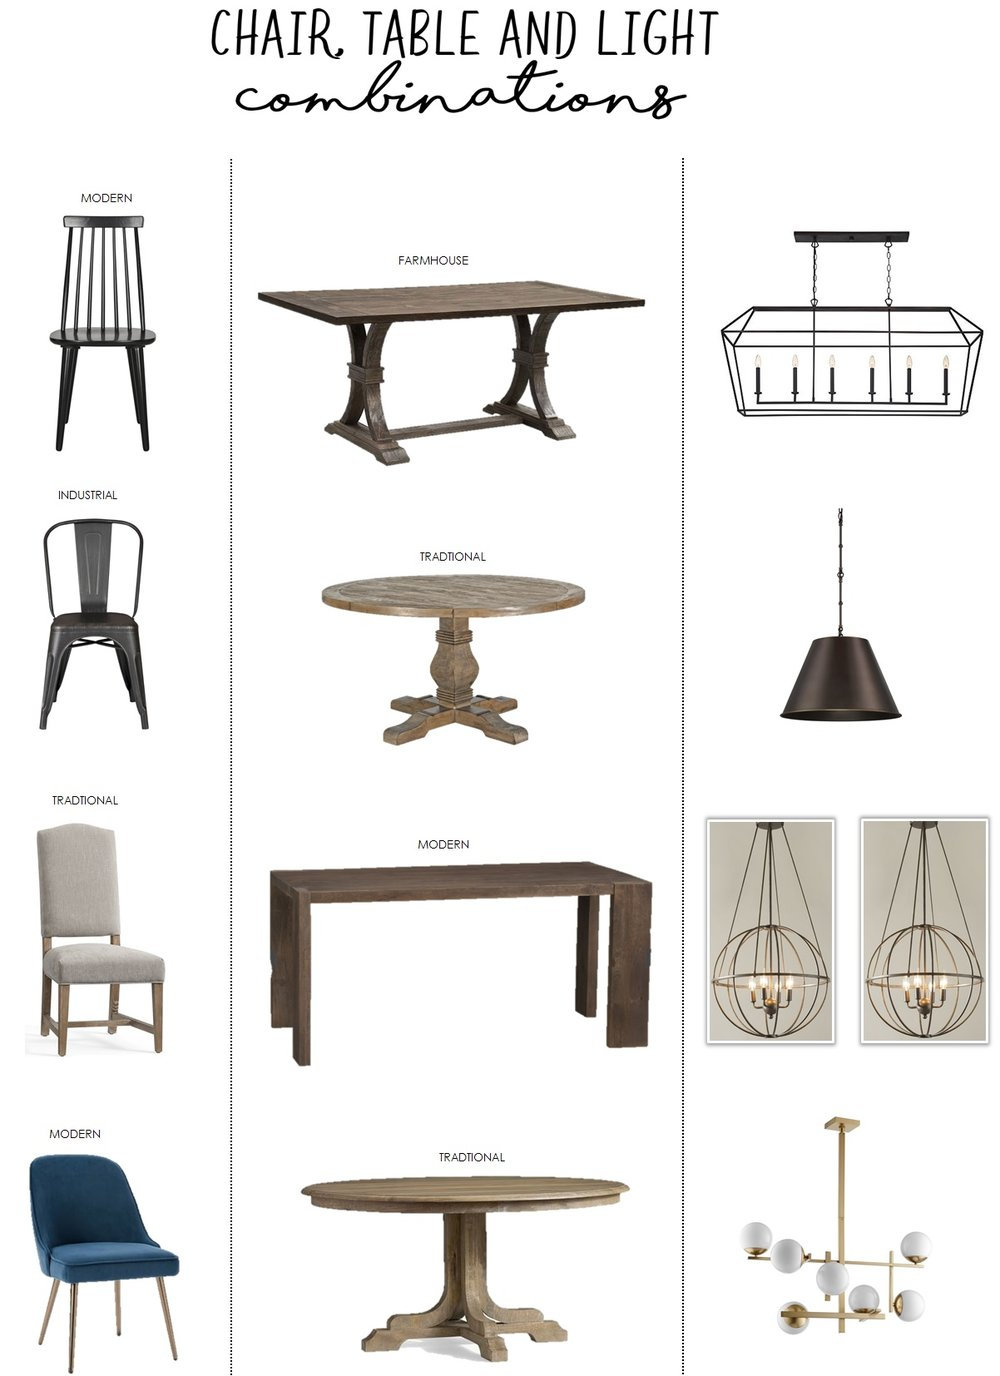 1.  Chair ,  Table ,  Light  | 2.  Chair ,  Table ,  Light  | 3.  Chair ,  Table ,  Light  | 4.  Chair ,  Table ,  Light